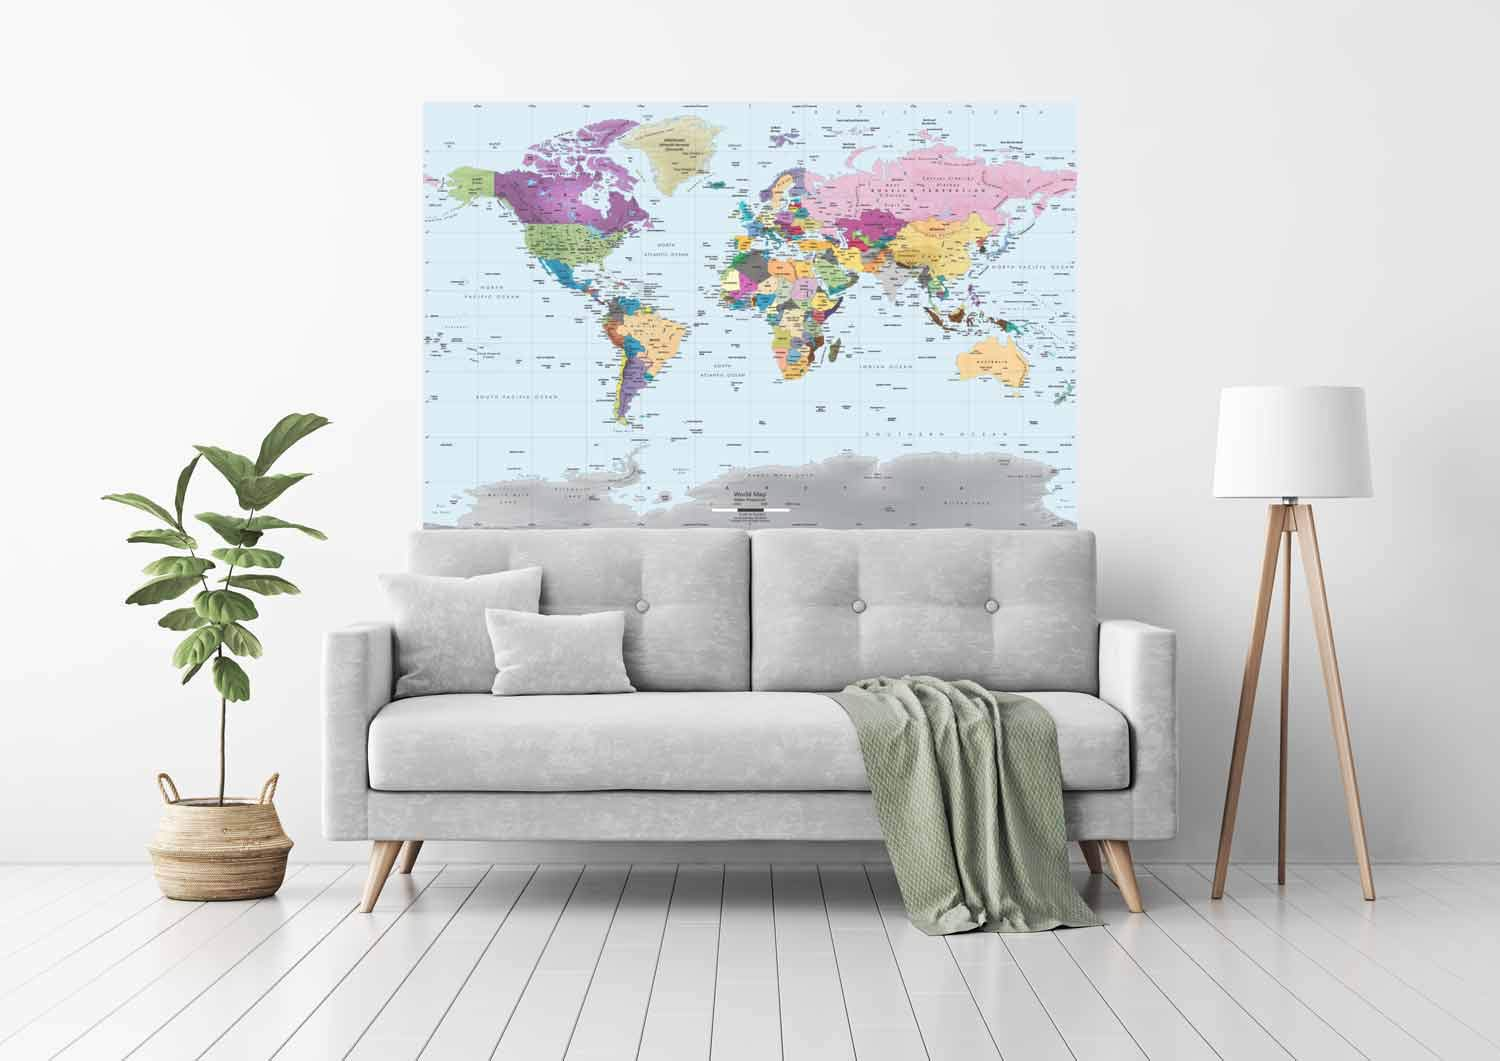 Academia Maps World Map Wall Mural - Modern Colorful Map - 62 x 42 One-Piece Premium Self-Adhesive Fabric - Professional-Grade DIY by Academia Maps (Image #2)